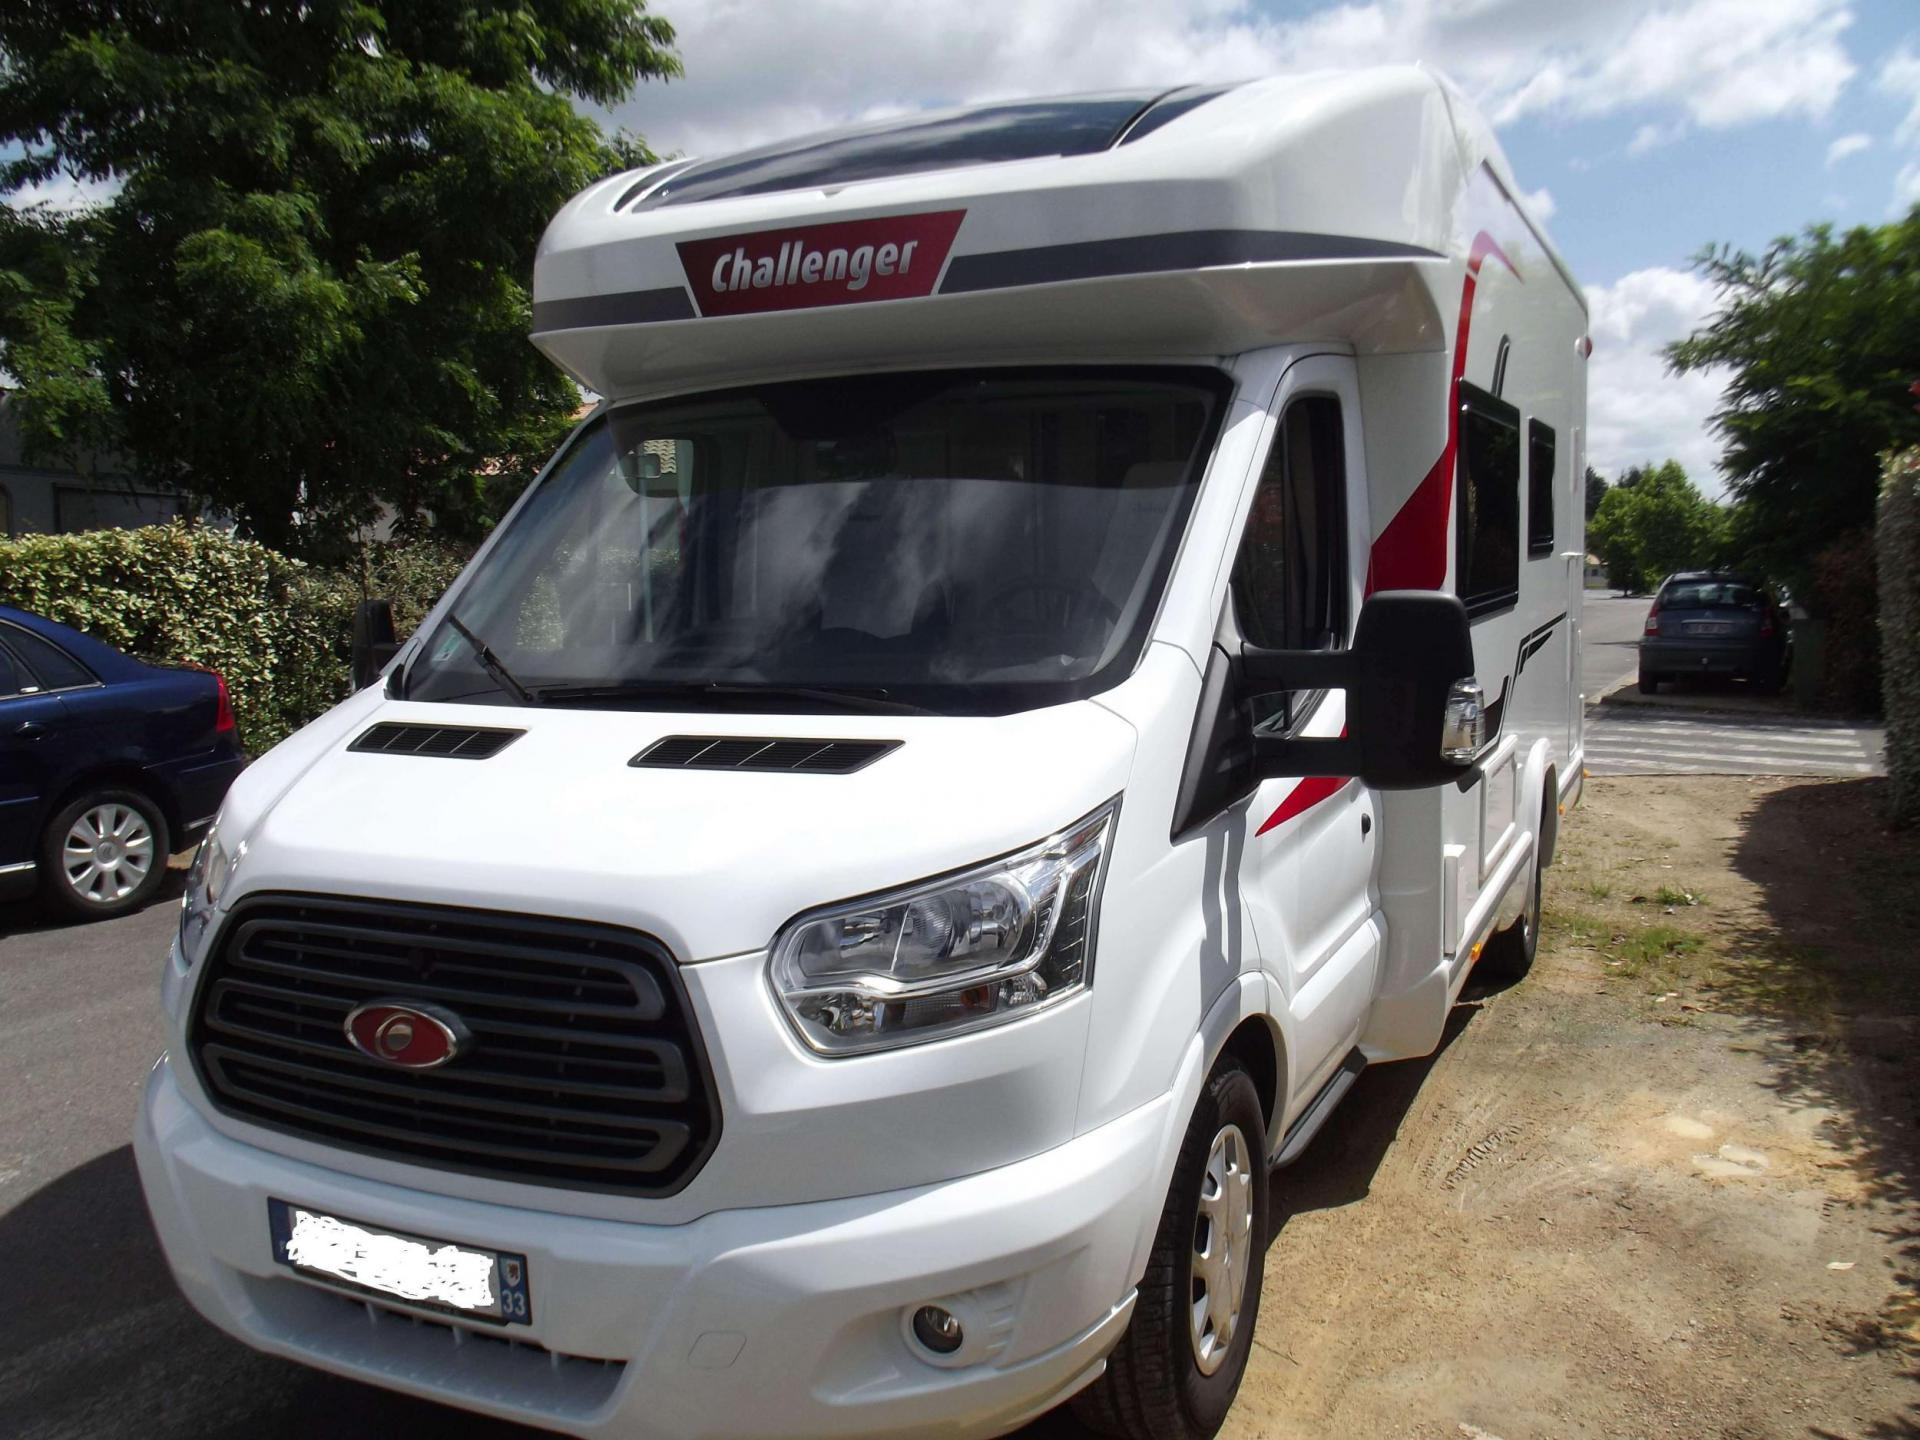 camping-car CHALLENGER 290 SPECIAL EDITION